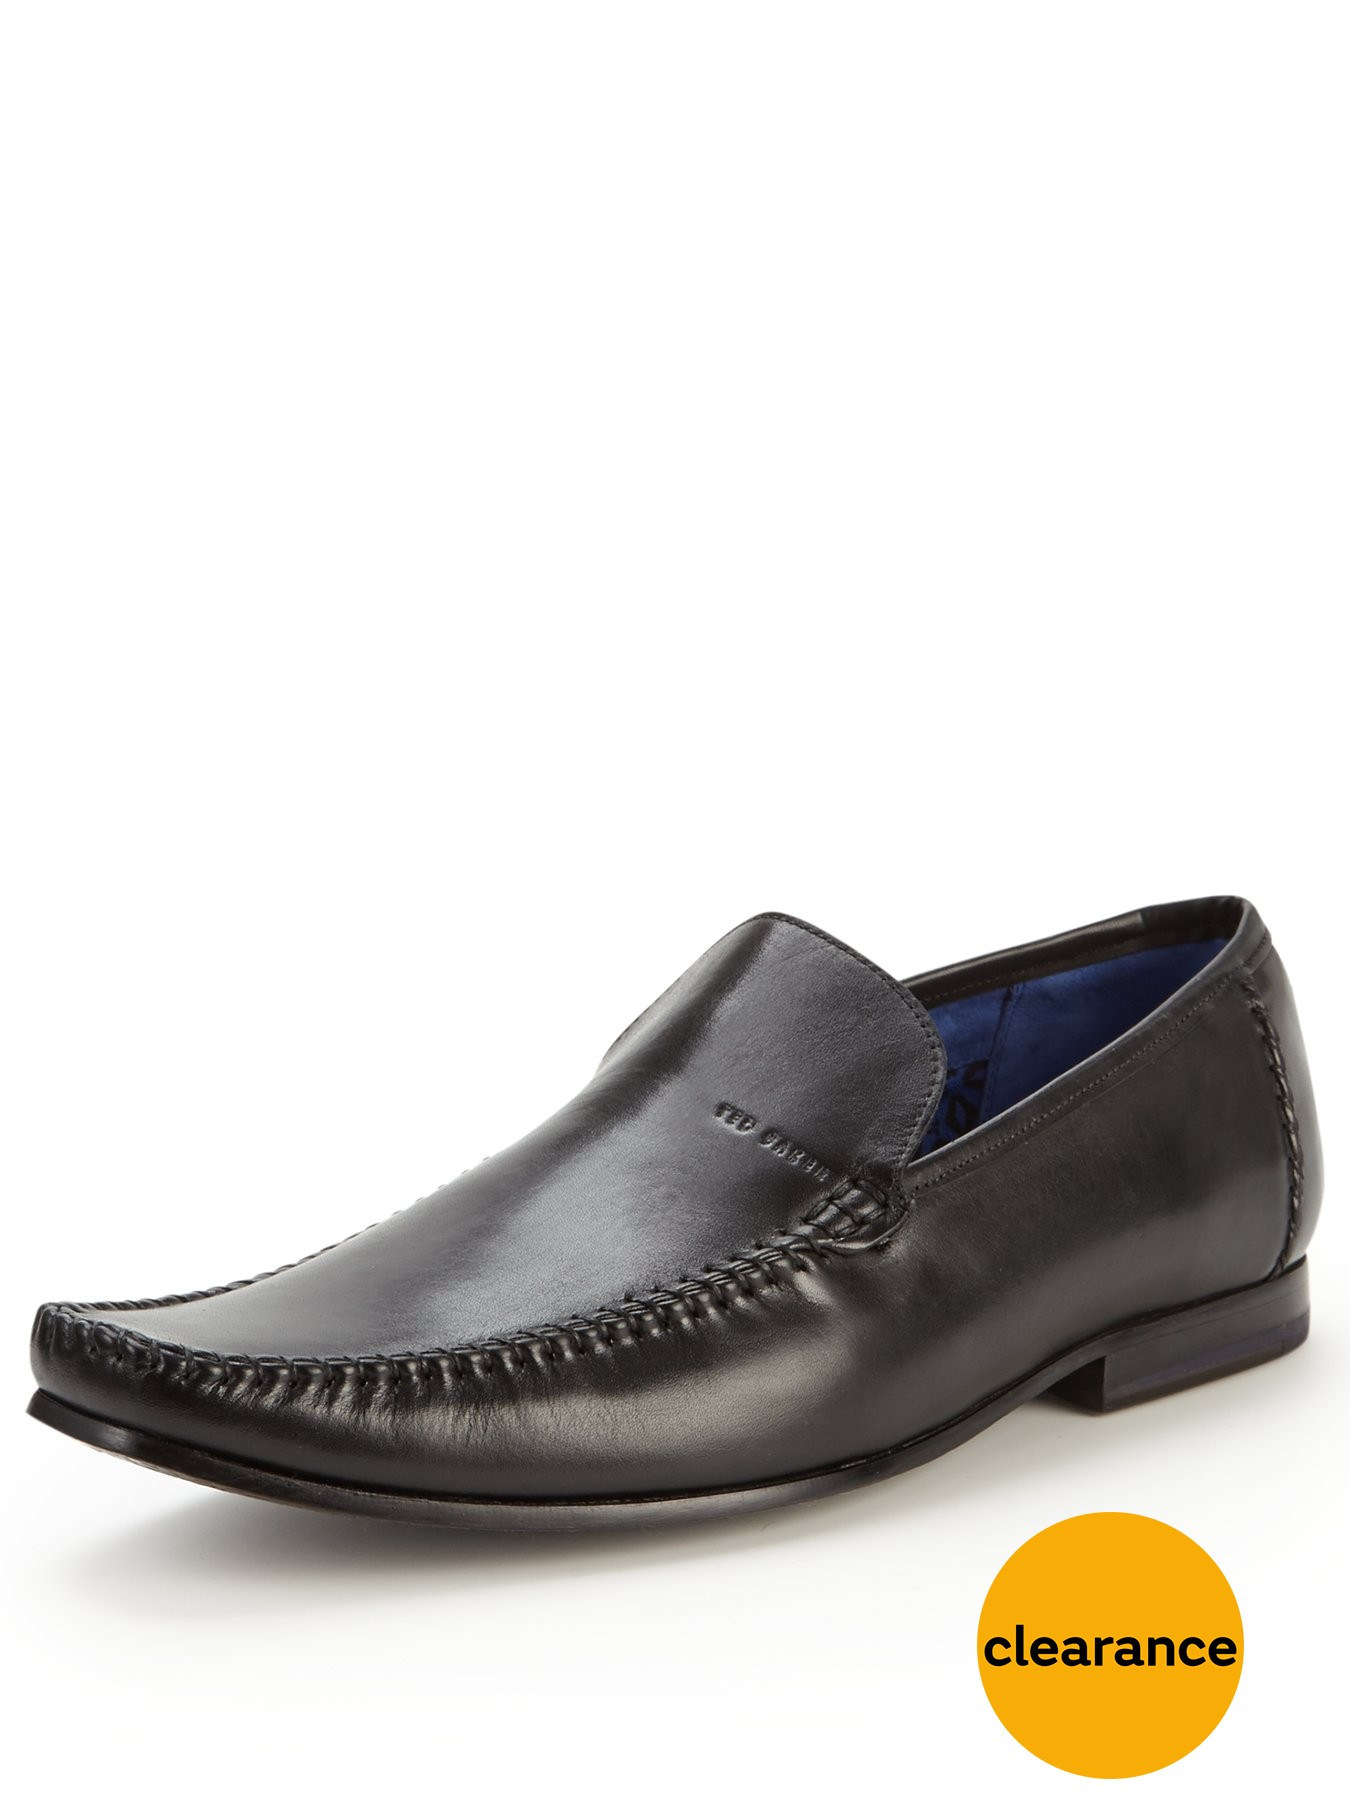 Ted Baker BLY 8 LEATHER SLIP ON 1600020962 Men's Shoes Ted Baker Shoes